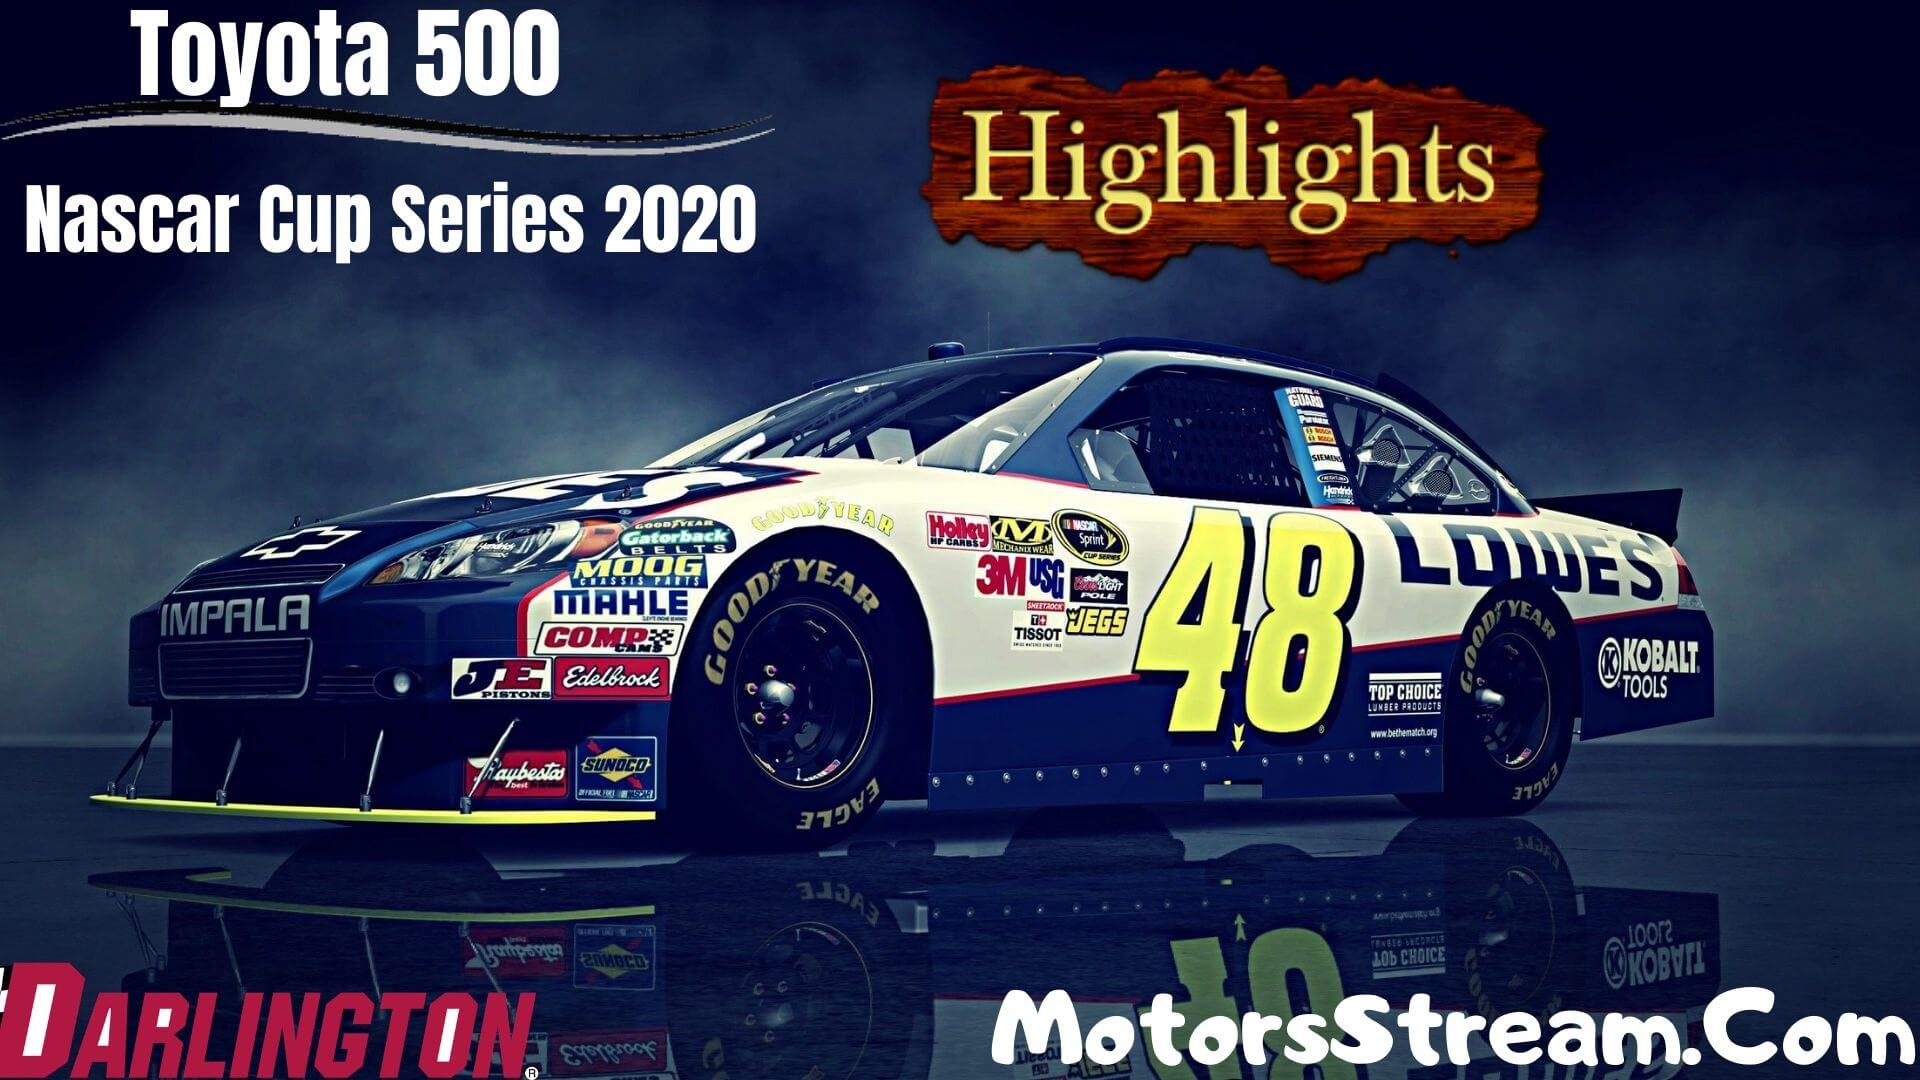 Toyota 500 Highlights 2020 Nascar Cup